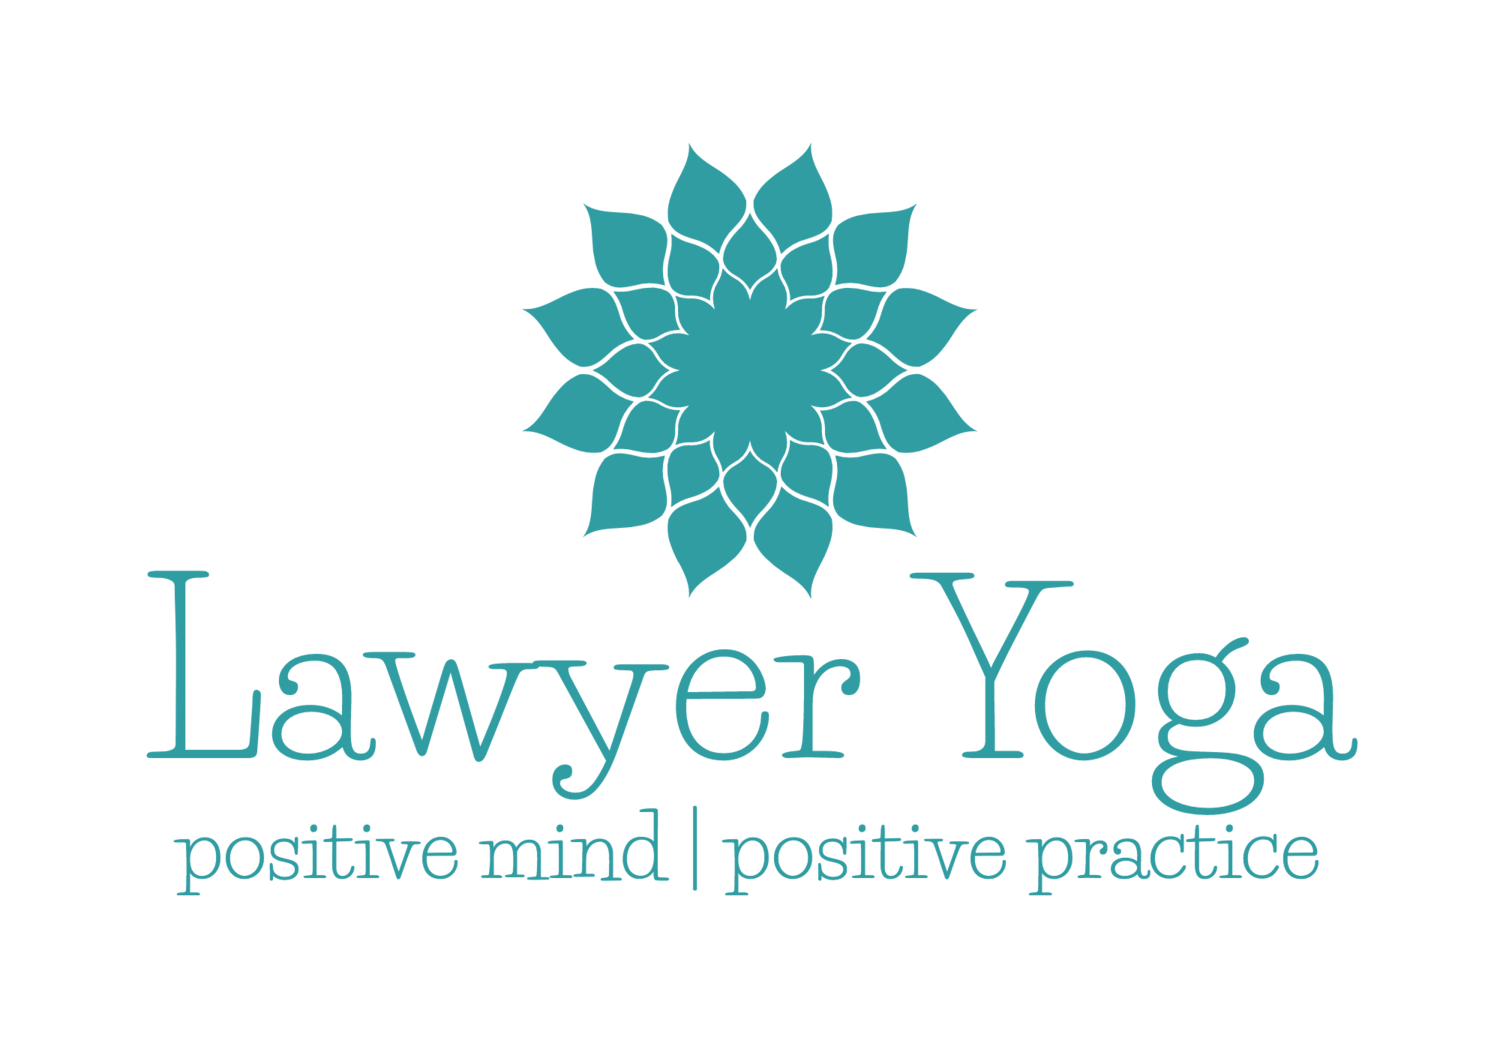 Lawyer Yoga - Ever wonder why sometimes you have a hard time focusing? Or why somedays you don't perform as well as other days? Many times a contributing factor is stress and negative brain chatter.Yoga, pranayama and meditation are tools to keep in touch with your inner stress level and develop positive thoughts and emotions.Lawyer Yoga is an introductory class specifically designed for busy lawyers. Let us introduce you to various types of yoga, pranayama and meditation techniques and how these tools can help you start to change the way you think and perform. For more information go to www.lawyersandyoga.com.